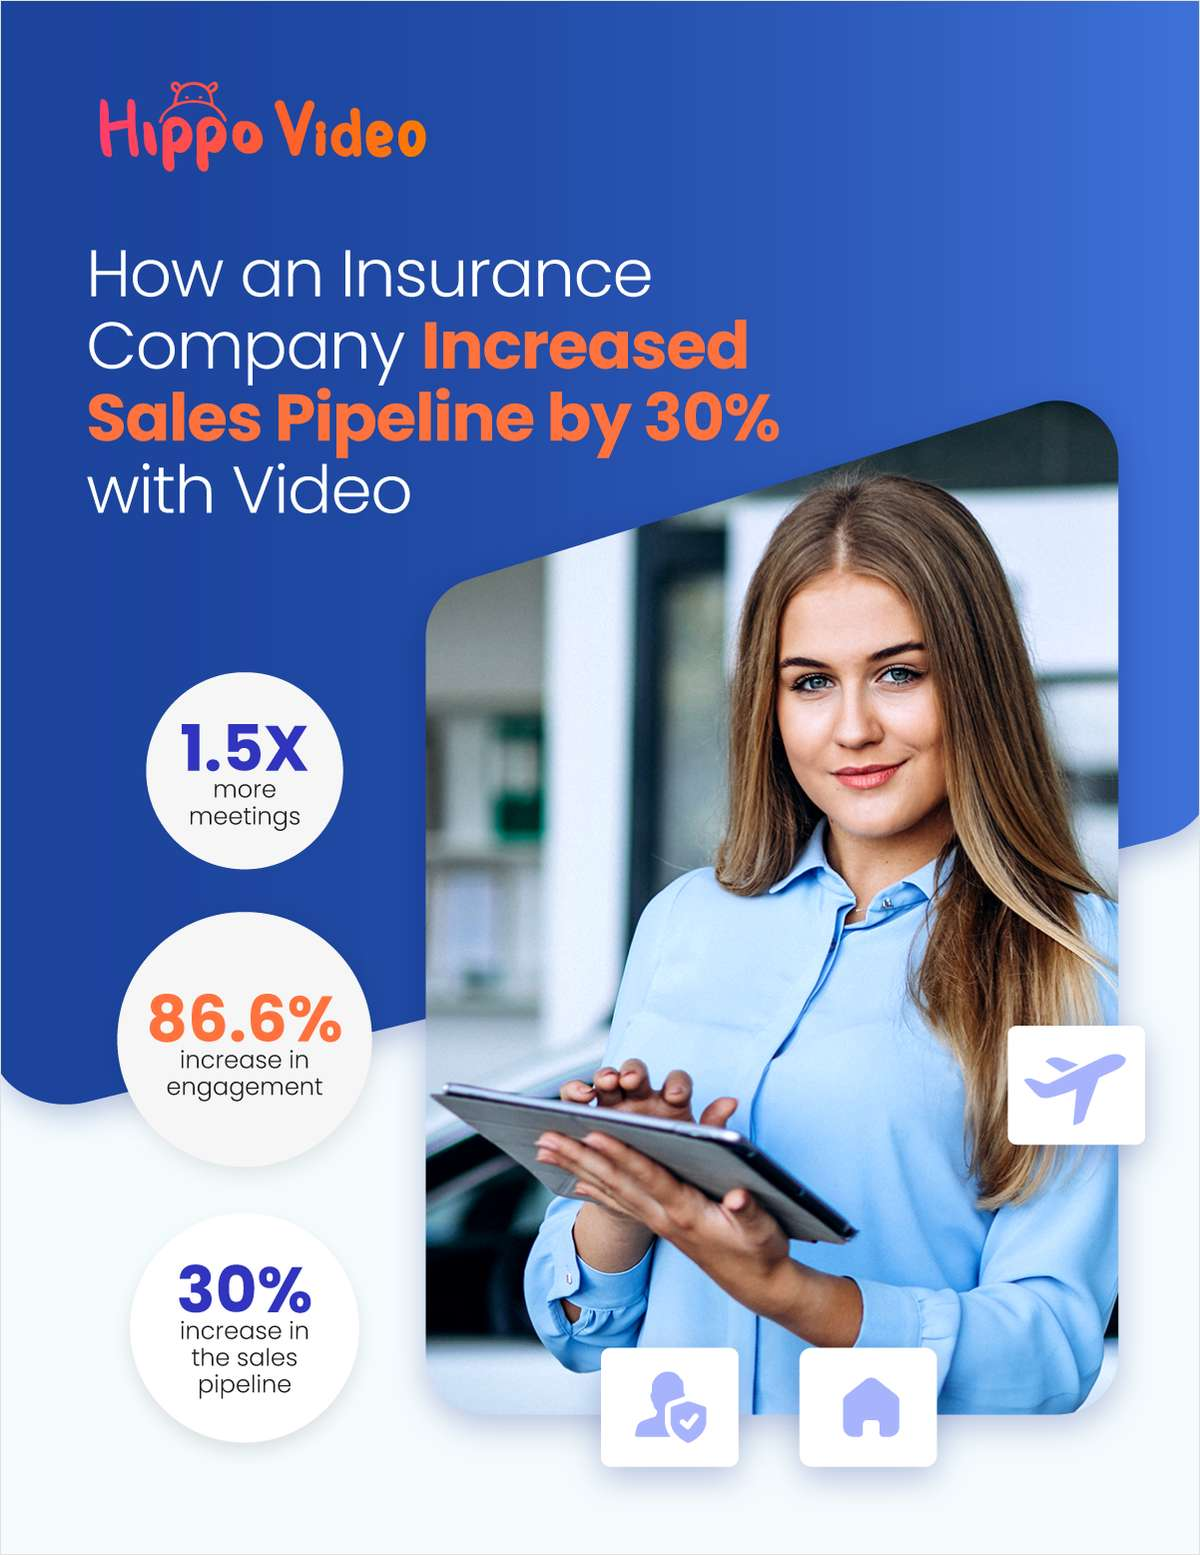 How a leading Insurance Company Increased Sales Pipeline by 30% using videos